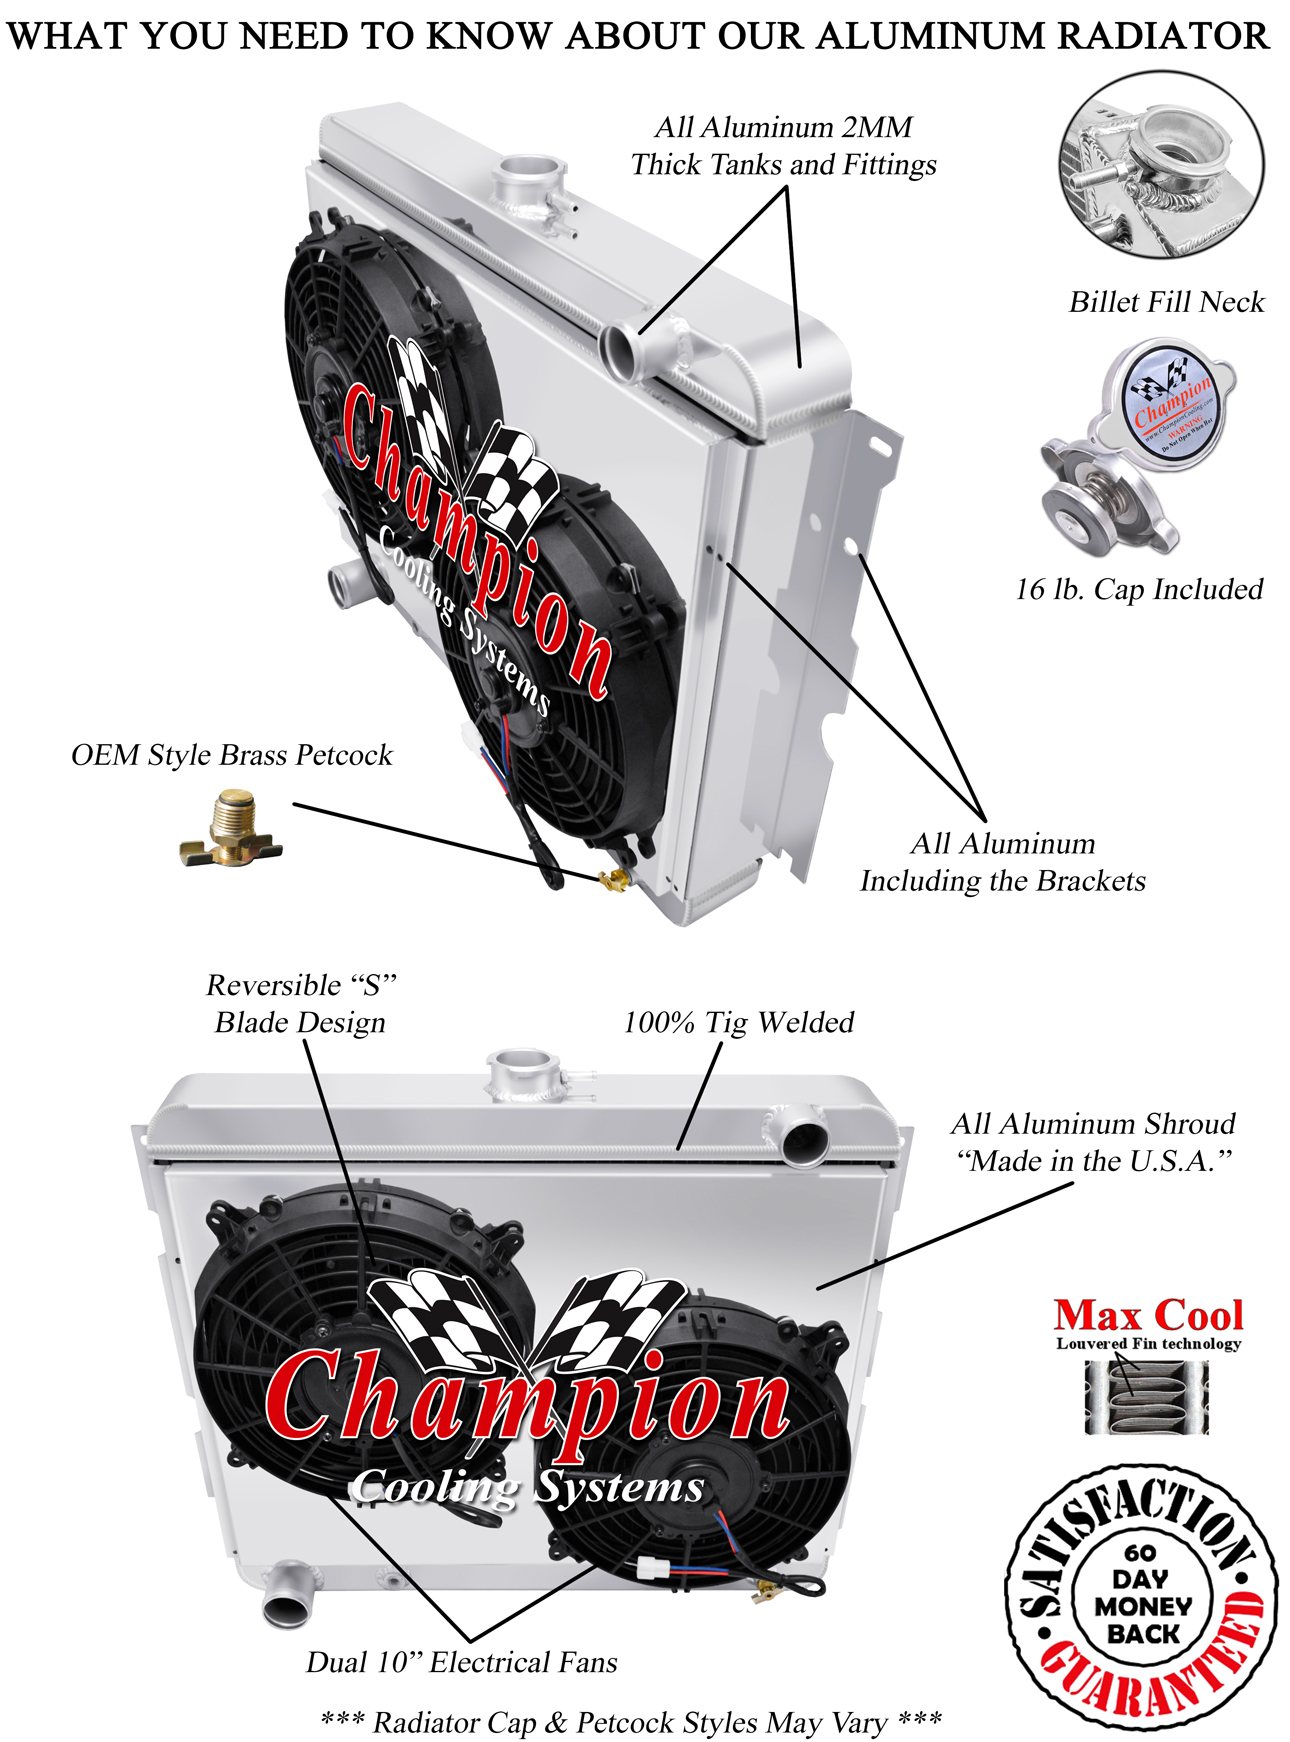 https://www.championcooling.com/photos/Photos%20White/With%20Fans/W-Shroud/2375/2x10/2375_2fs_d_w.jpg